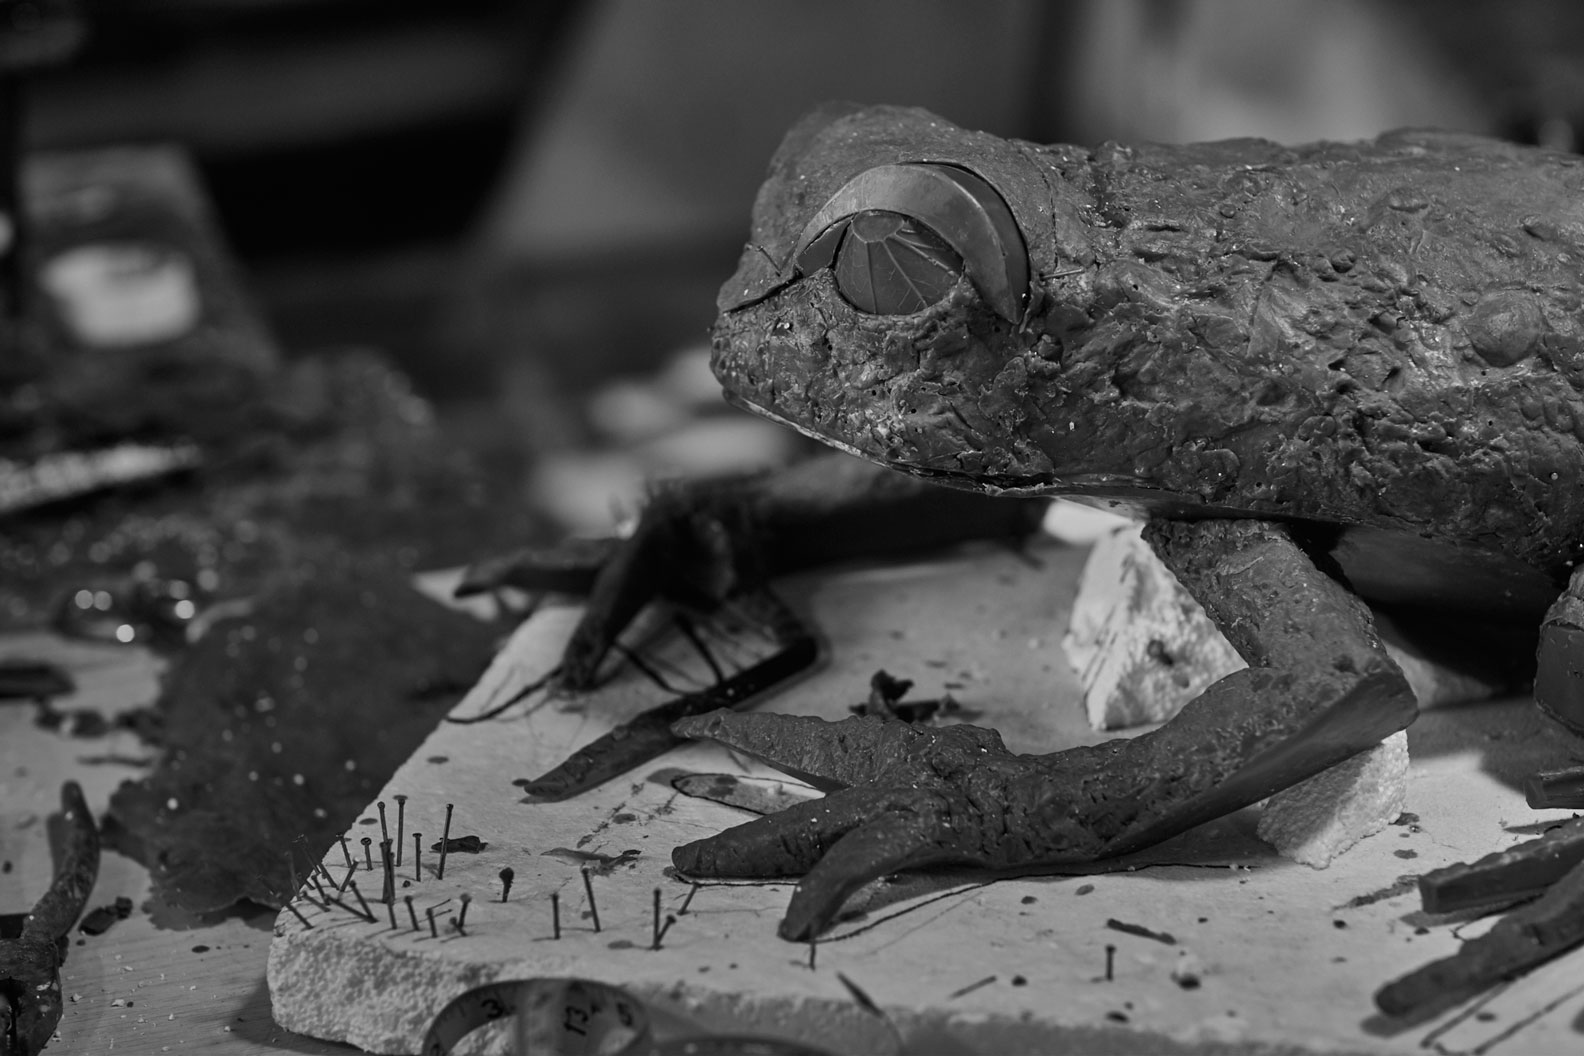 Katherine Taylor FROGS project, wax phase. Alfa Arte